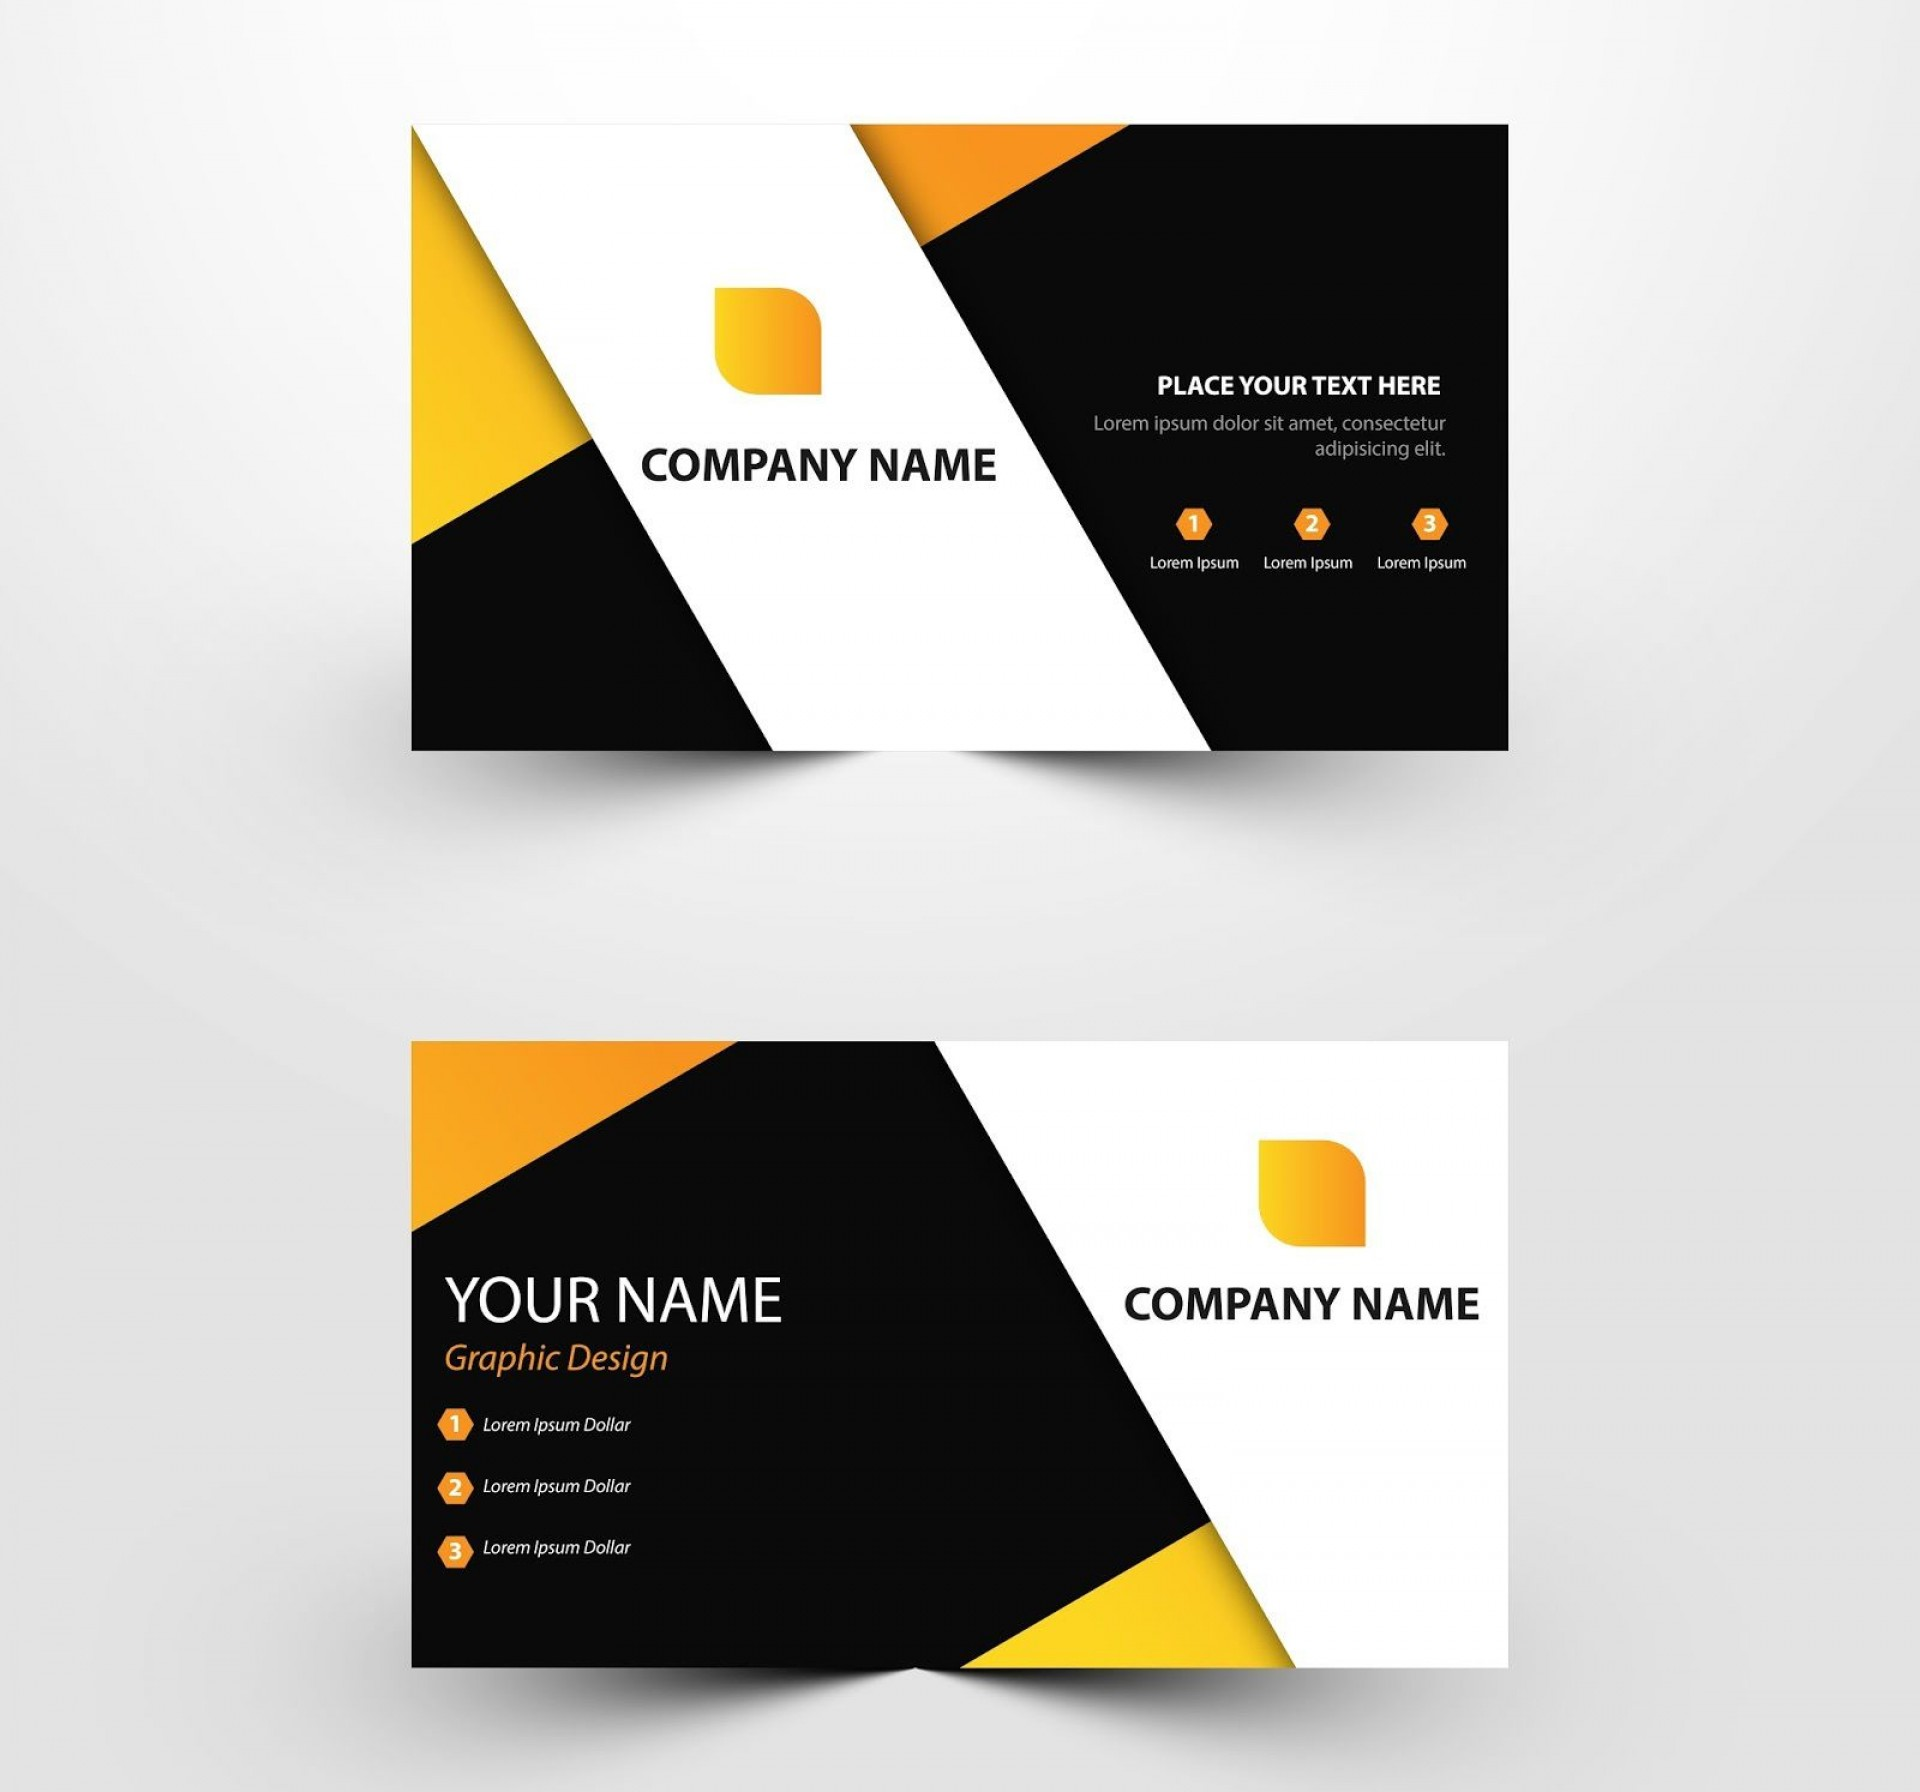 009 Awful Free Adobe Photoshop Busines Card Template Example  Templates Download1920